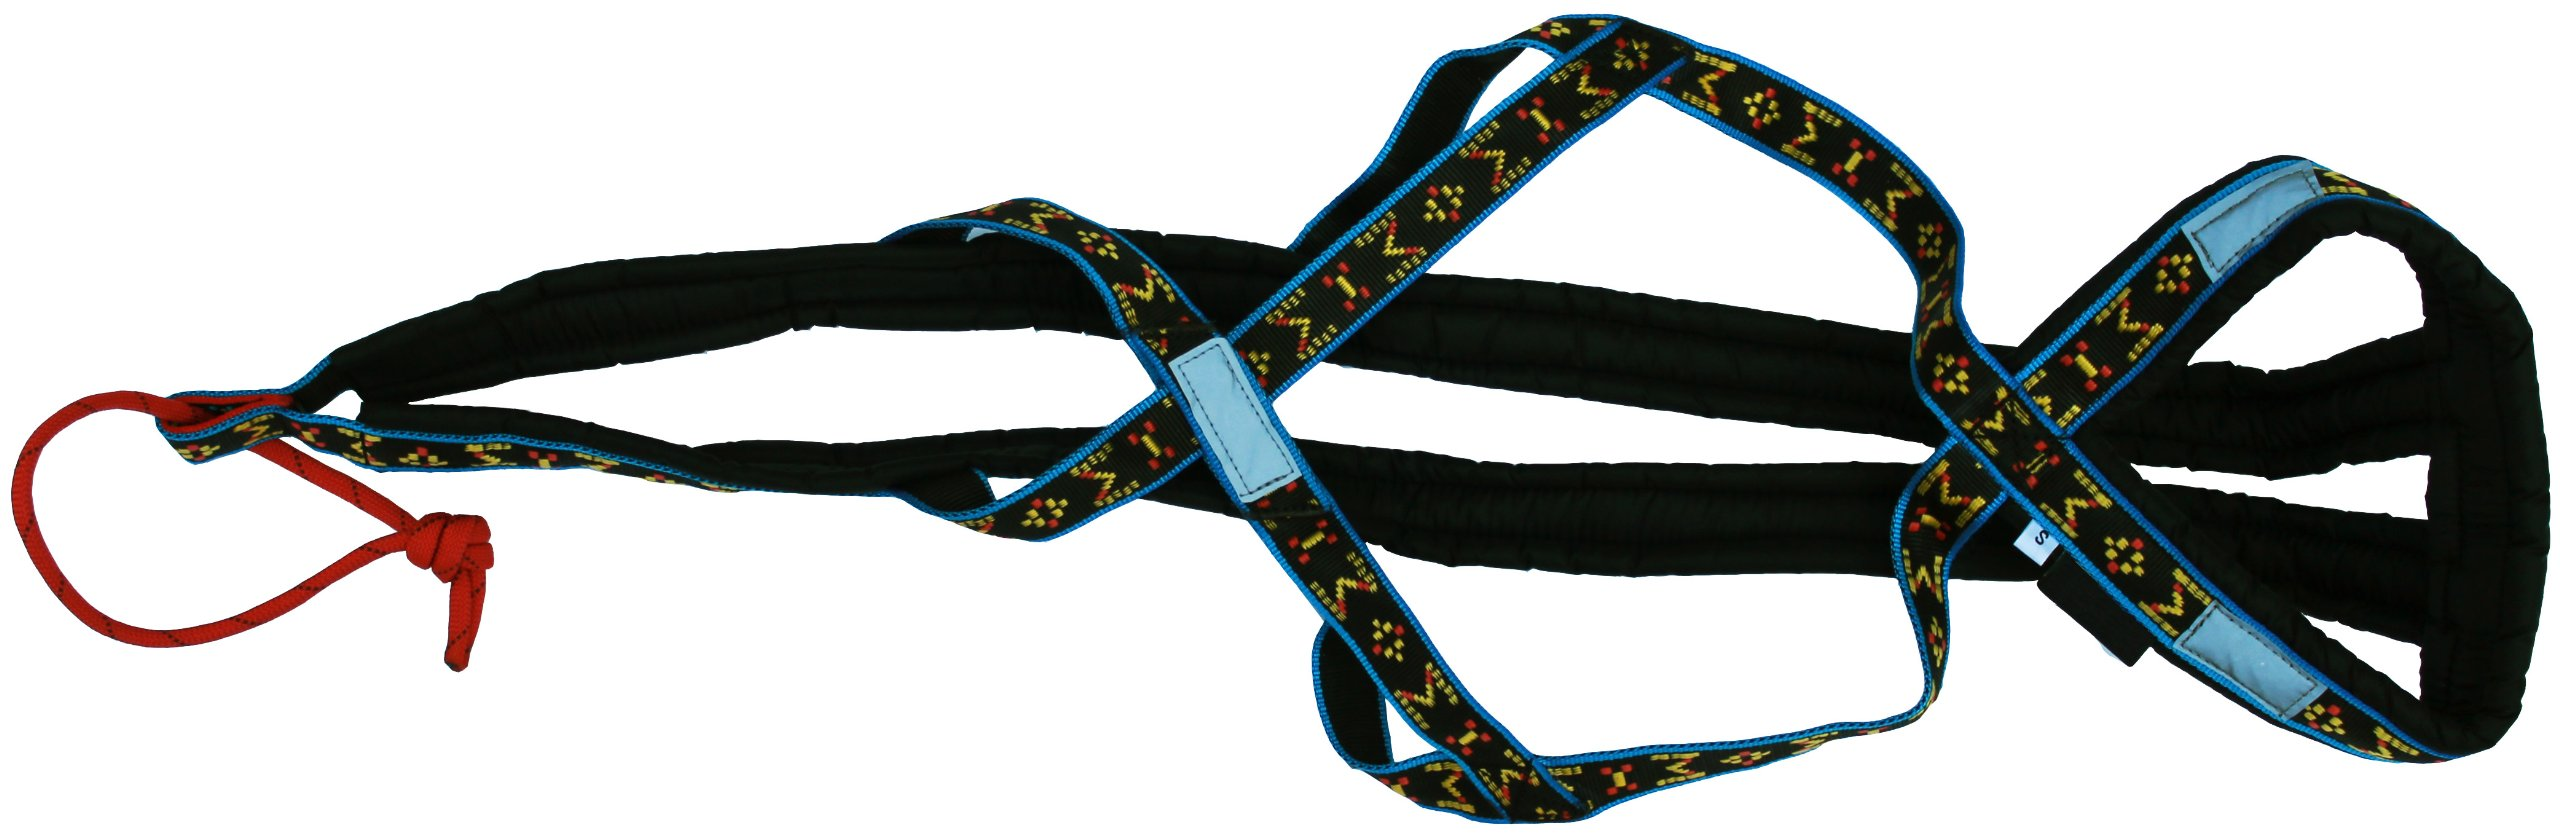 Weight Pulling Sledding Dog Harness X-Back Style for Wide Chested Hound Dogs (Black/Blue, Large) by Dogs My Love